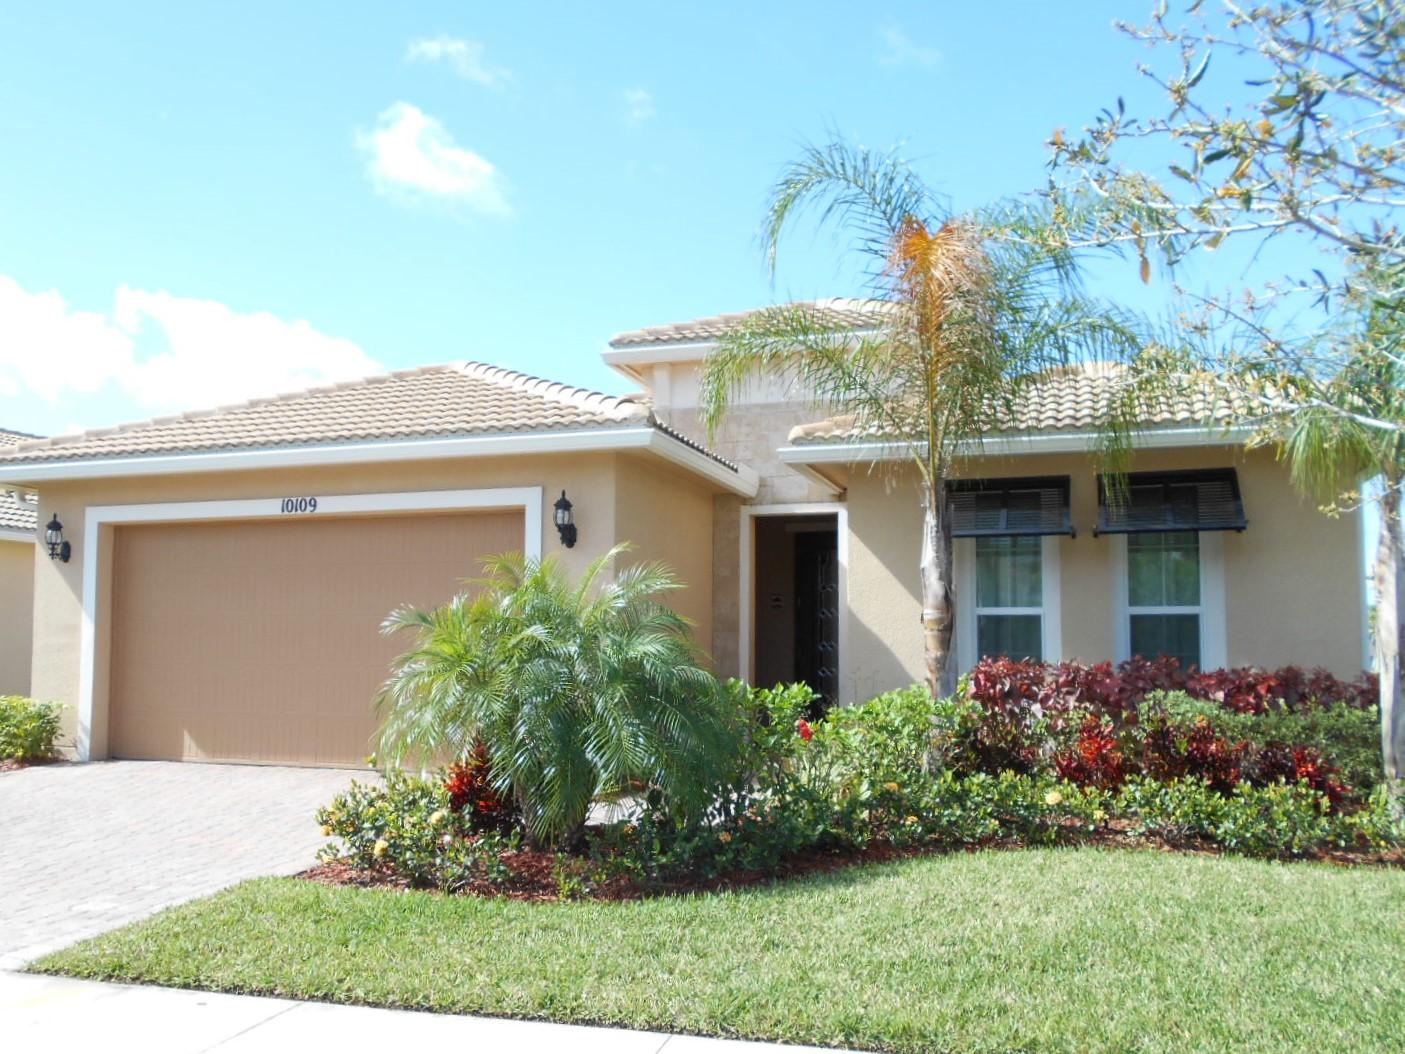 MOVE IN READY!! Vitalia 55+ Lauderdale model with 2 bedrooms, 1 large den, 2 baths, 2 car garage all on a beautiful lake. Only 2 years old with barrel tile roof, impact glass on all windows, extended lanai, all tile floor throughout, gas appliances, large open concept great room, plus too many upgrades to mention here. Vitalia community features many activities, 2 pools, spa, shows, dinner dances, arts and crafts, gym, ect.